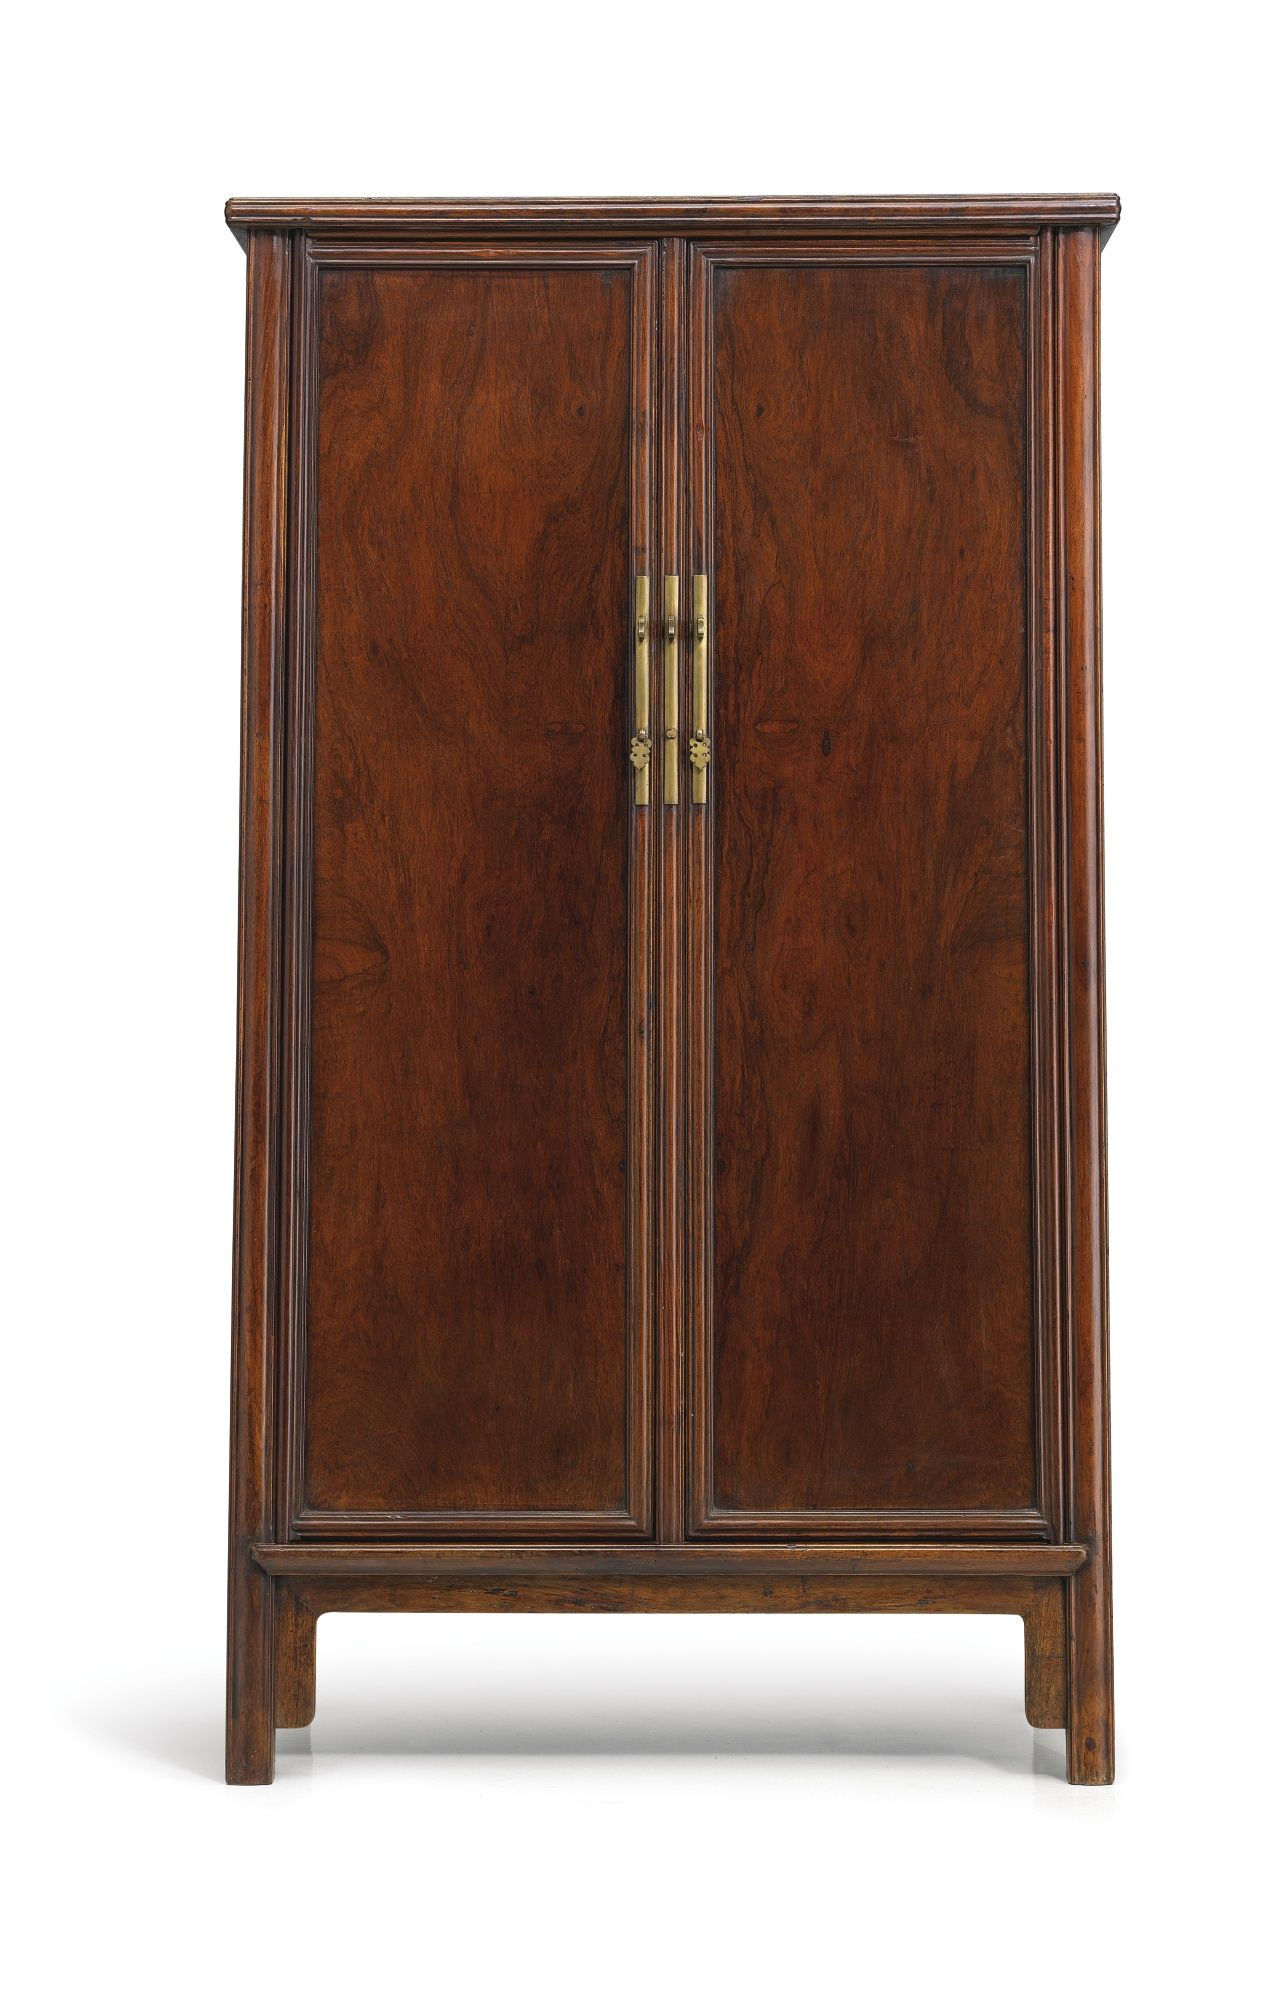 A Huanghuali Sloping Stile Wood Hinged Cabinet, Late Ming Dynasty